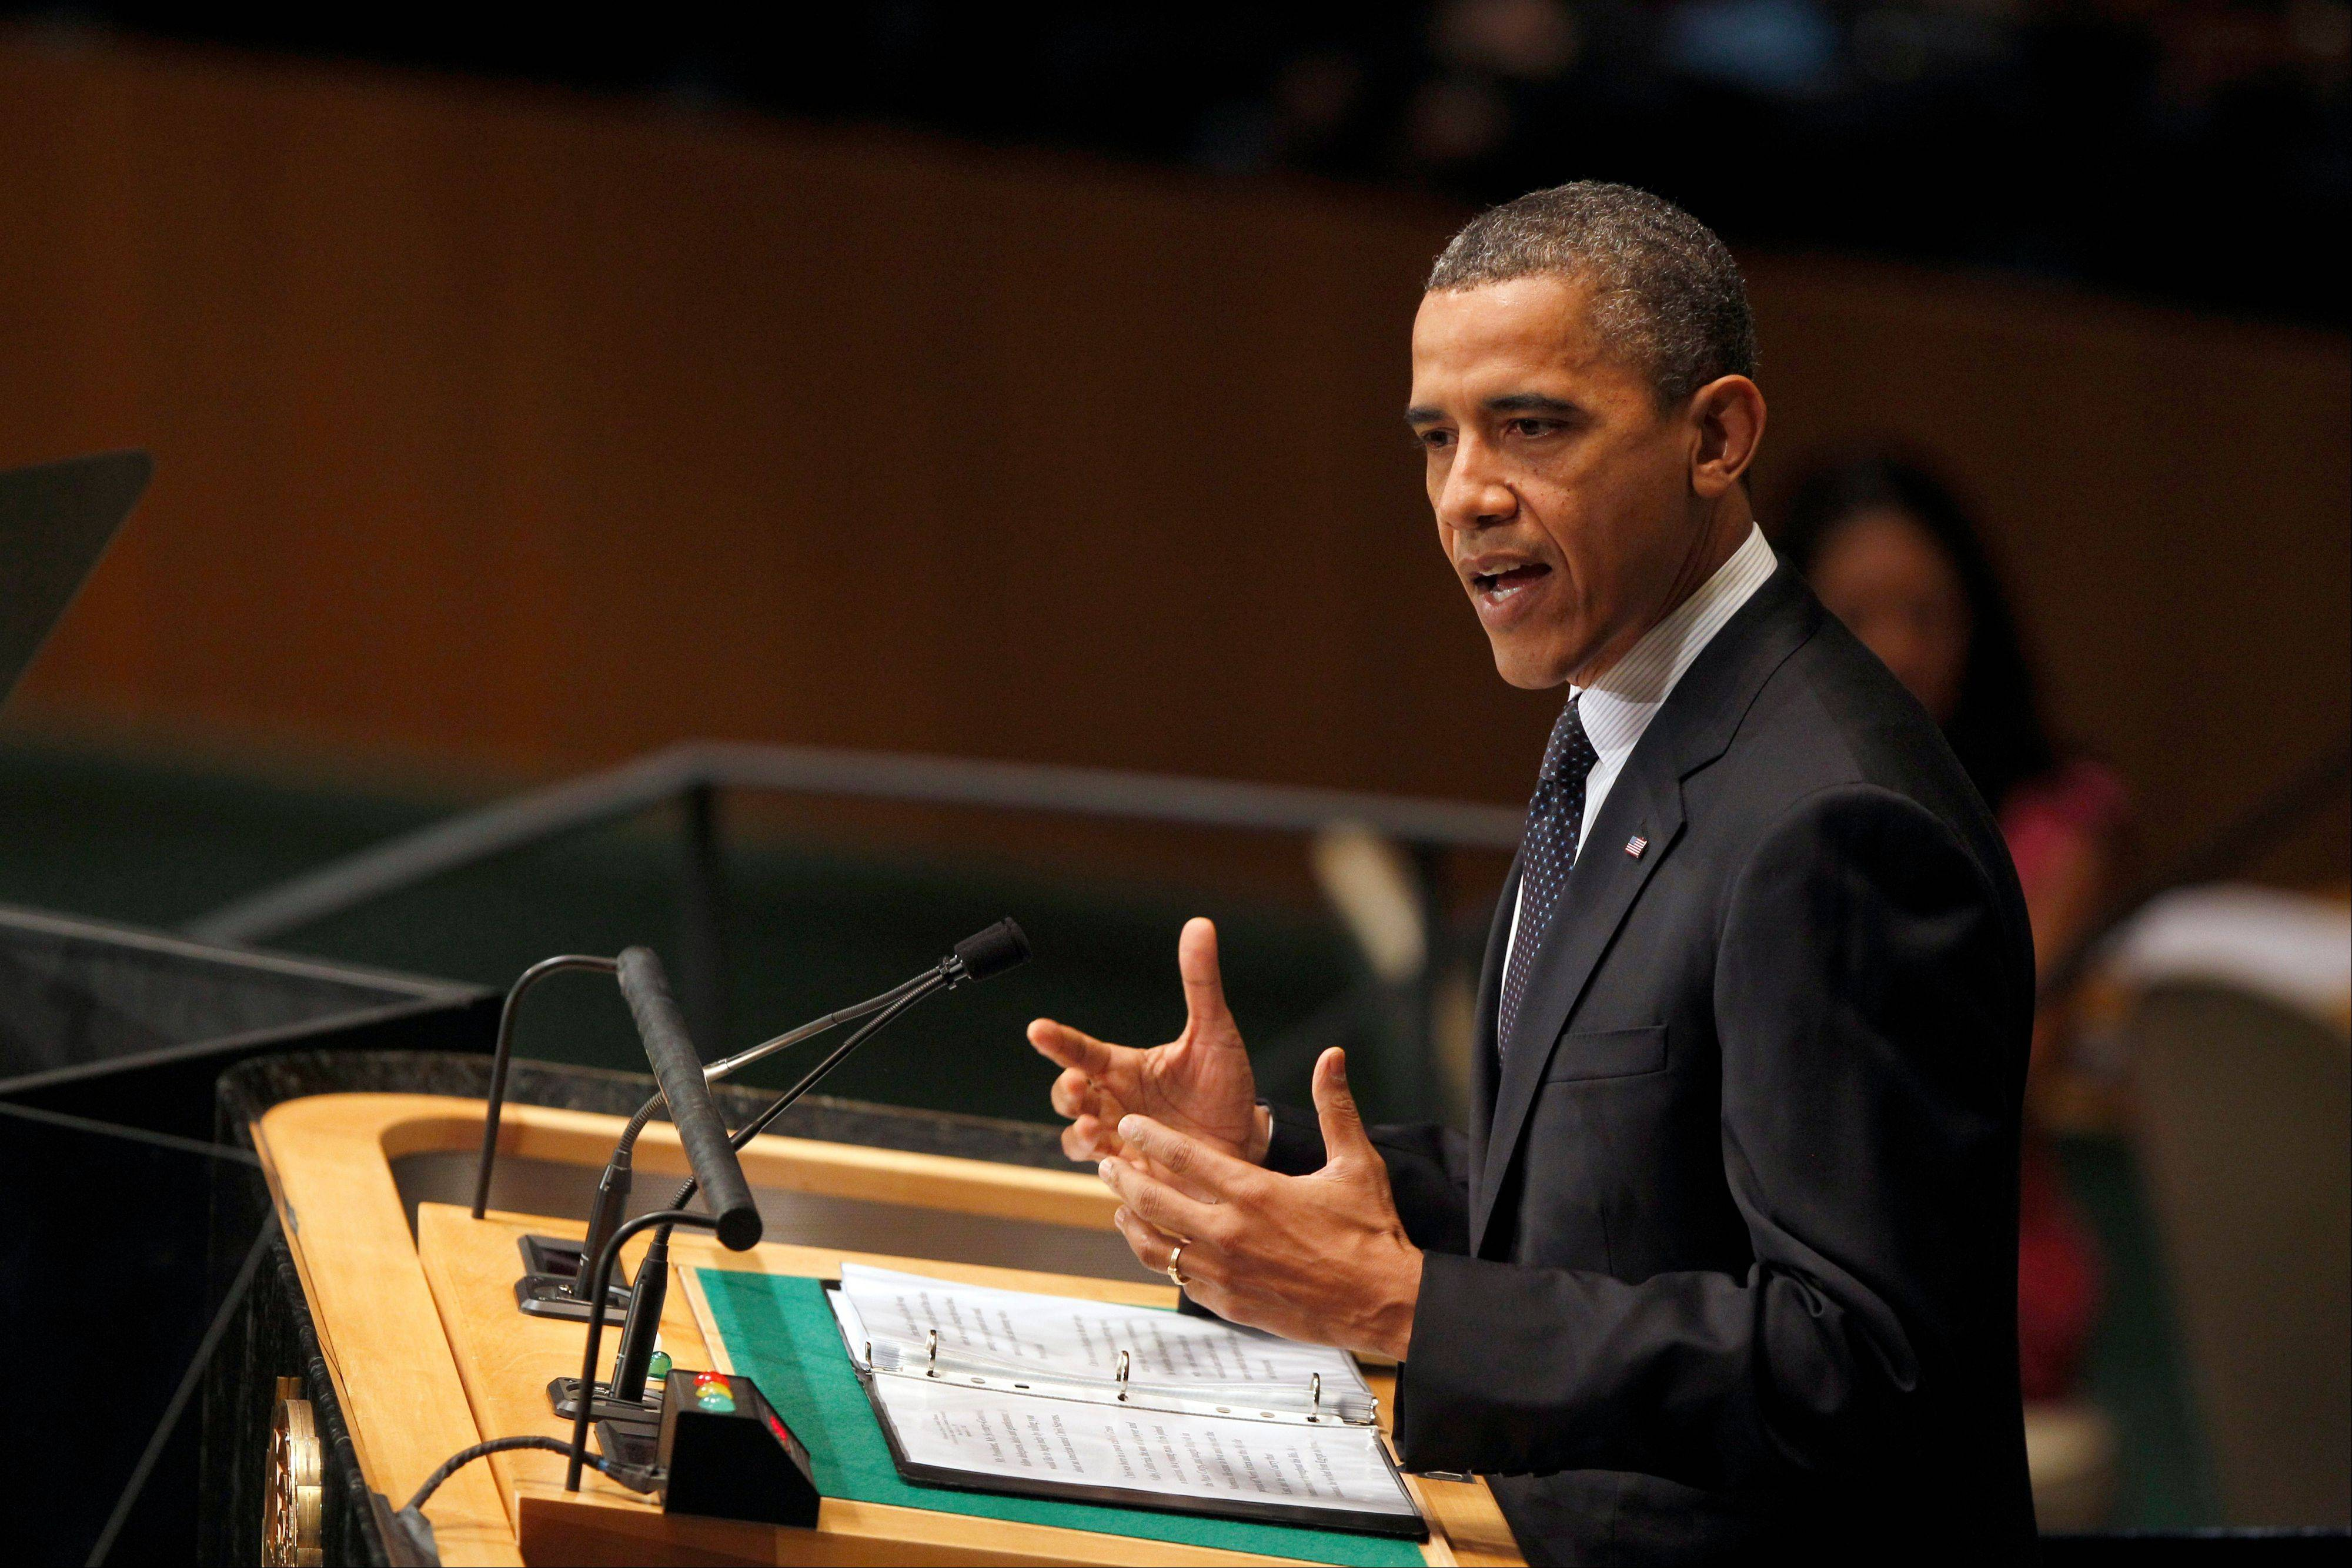 President Barack Obama addresses the 67th session of the United Nations General Assembly at U.N. headquarters, Tuesday, Sept. 25, 2012.